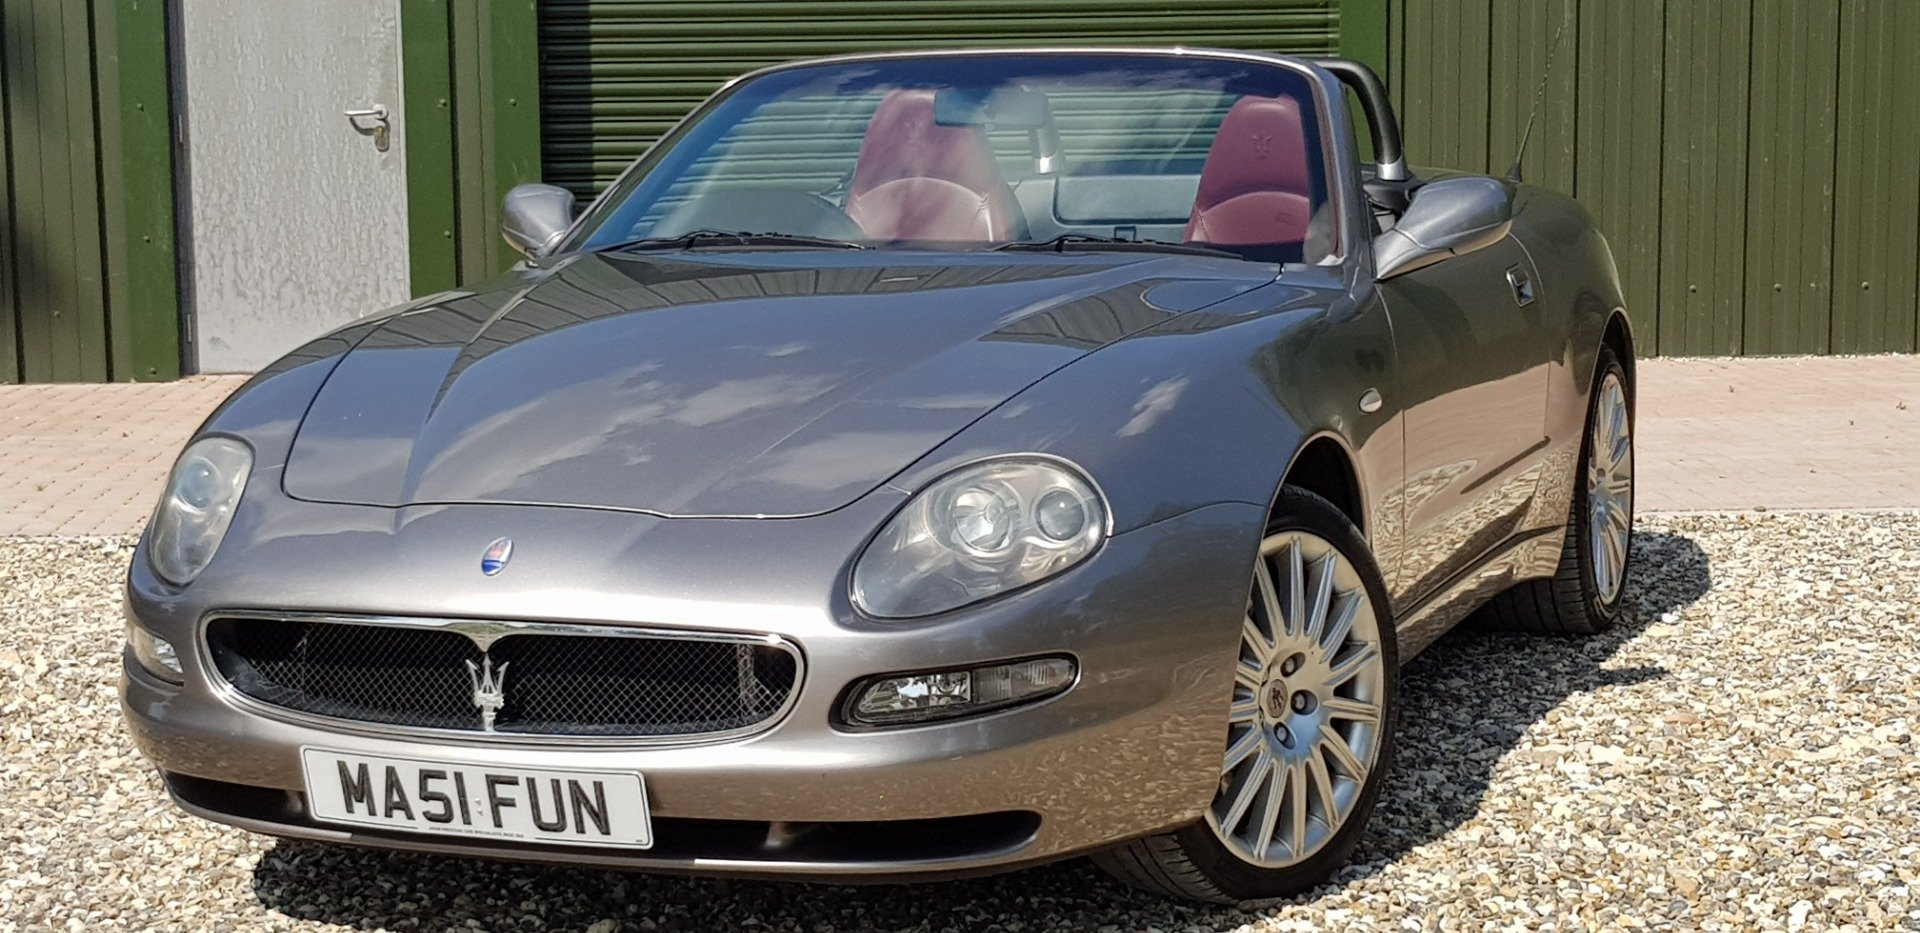 2002 very  low  miles  fsh  simply  stunning  and  sought after   For Sale (picture 2 of 6)